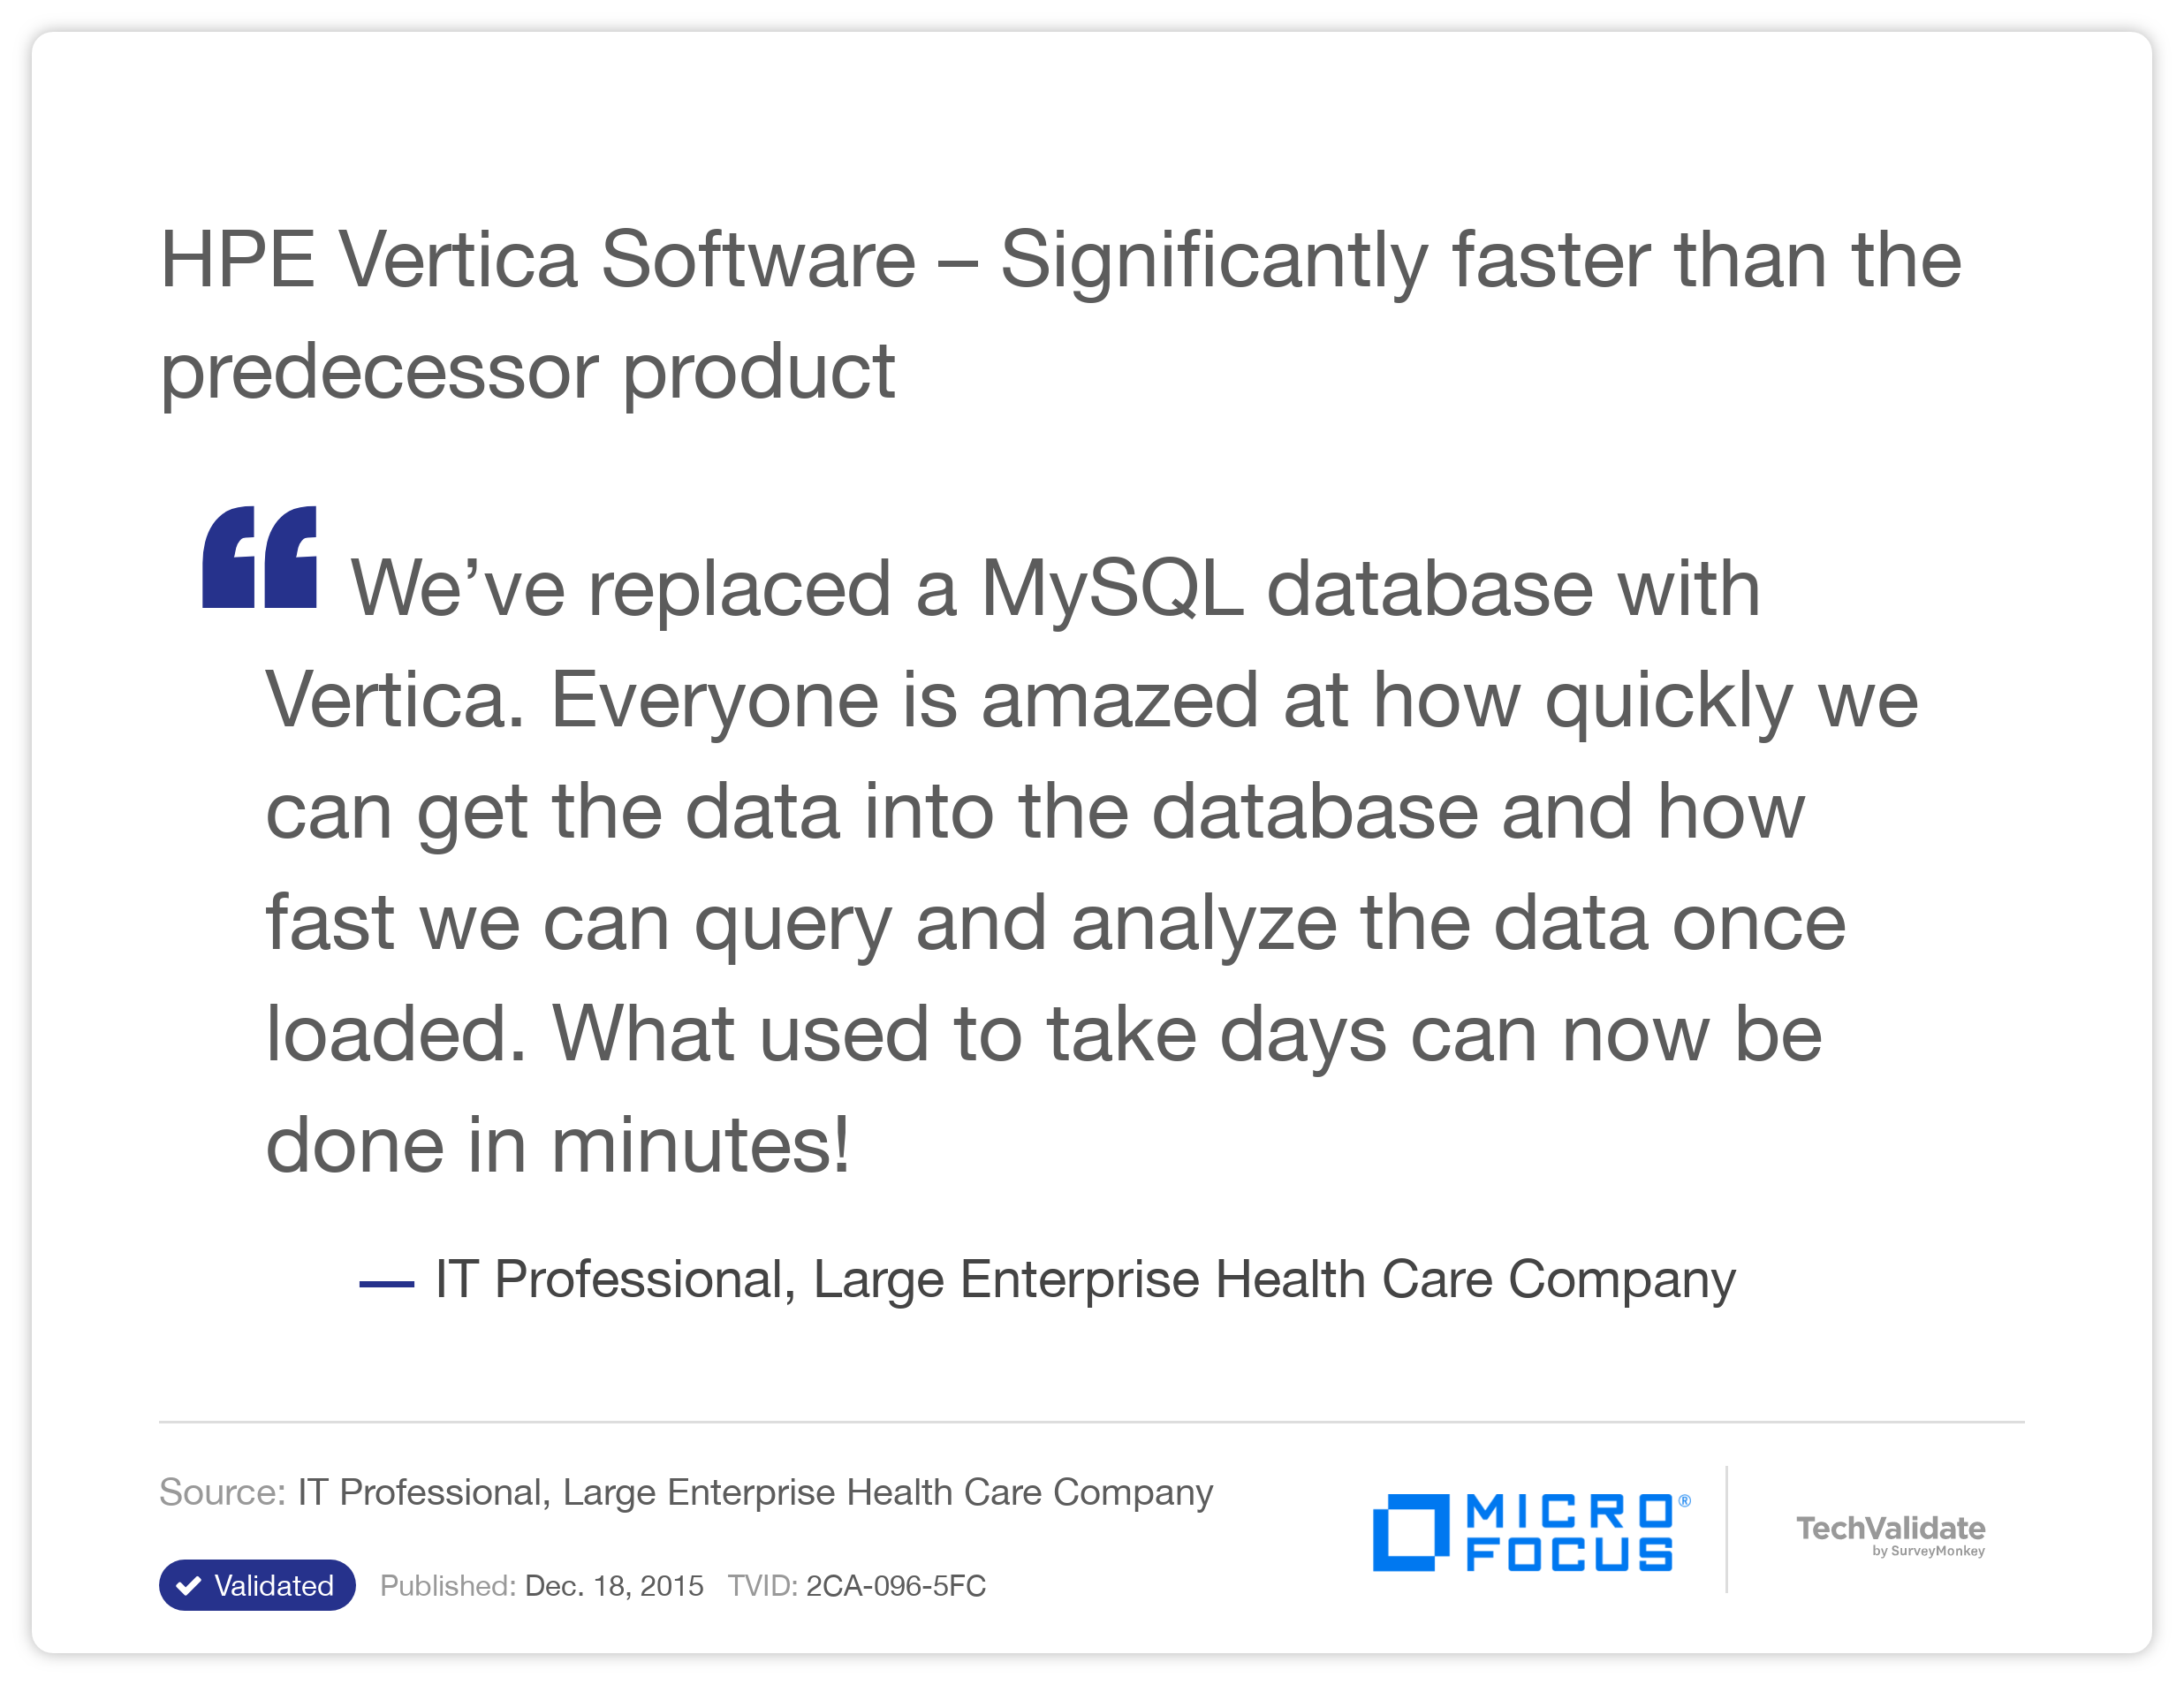 HP Vertica Software  - Significantly faster than the predecessor product